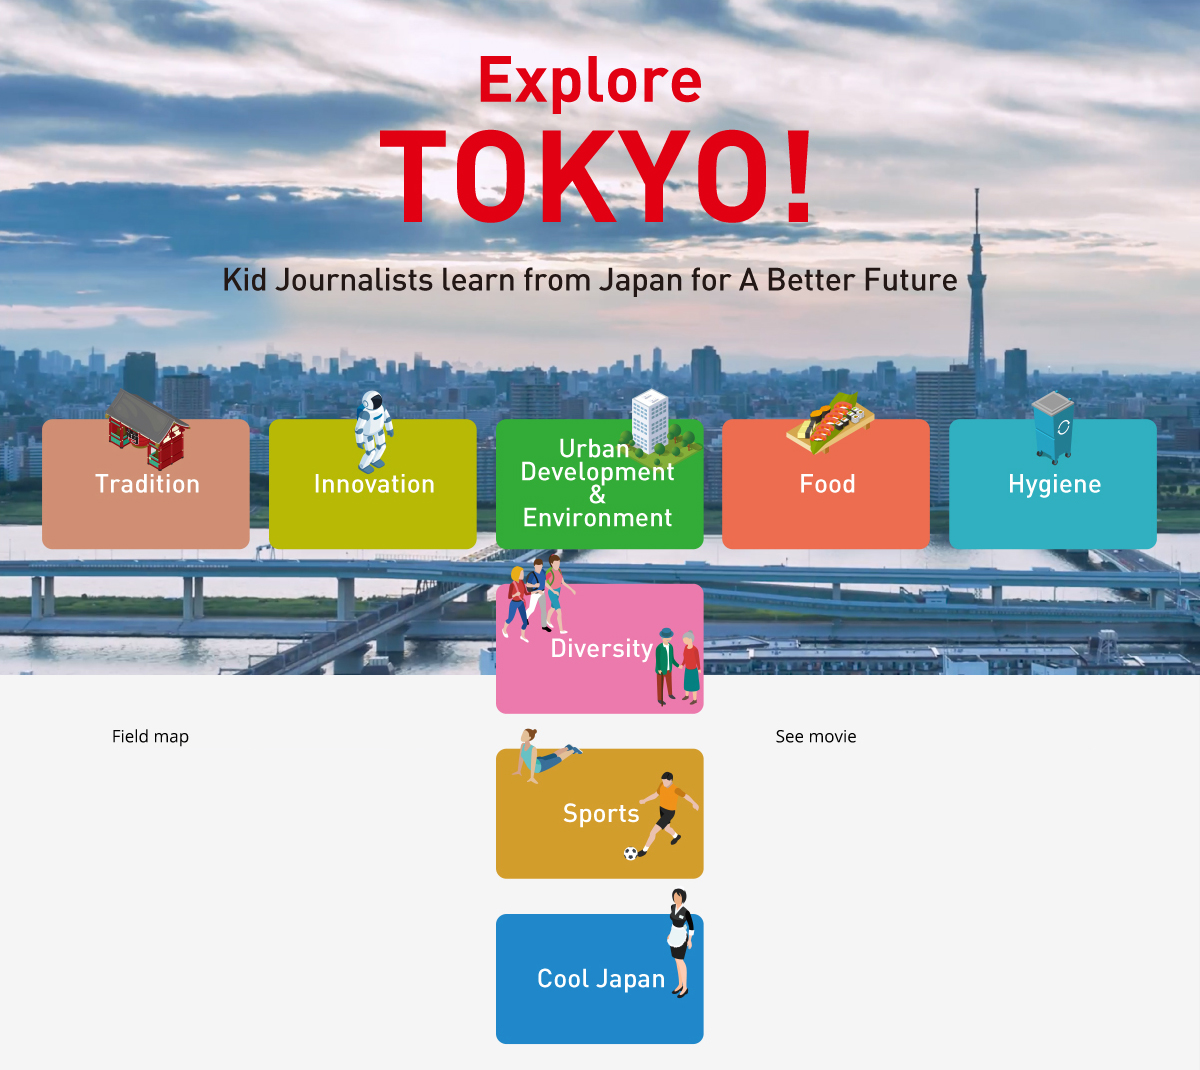 Explore TOKYO! Kid Journalists learn From Japan For A Better Future